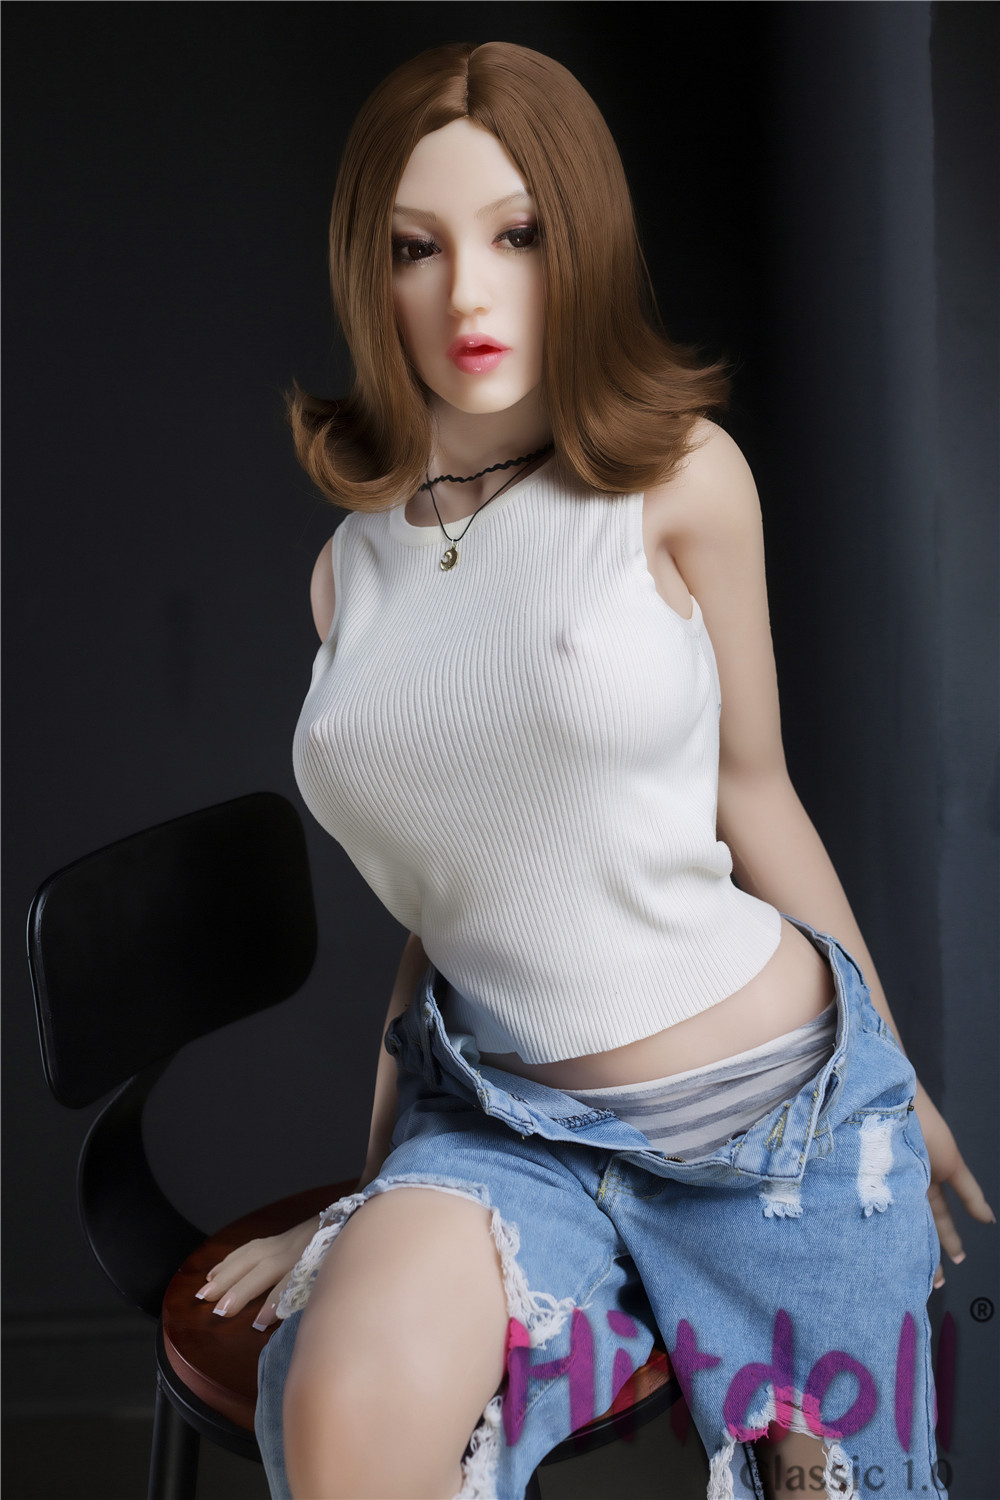 IL Doll 150cm(4.92ft) E-Cup Full Size lifelike Sex Silicone Doll with Head #15